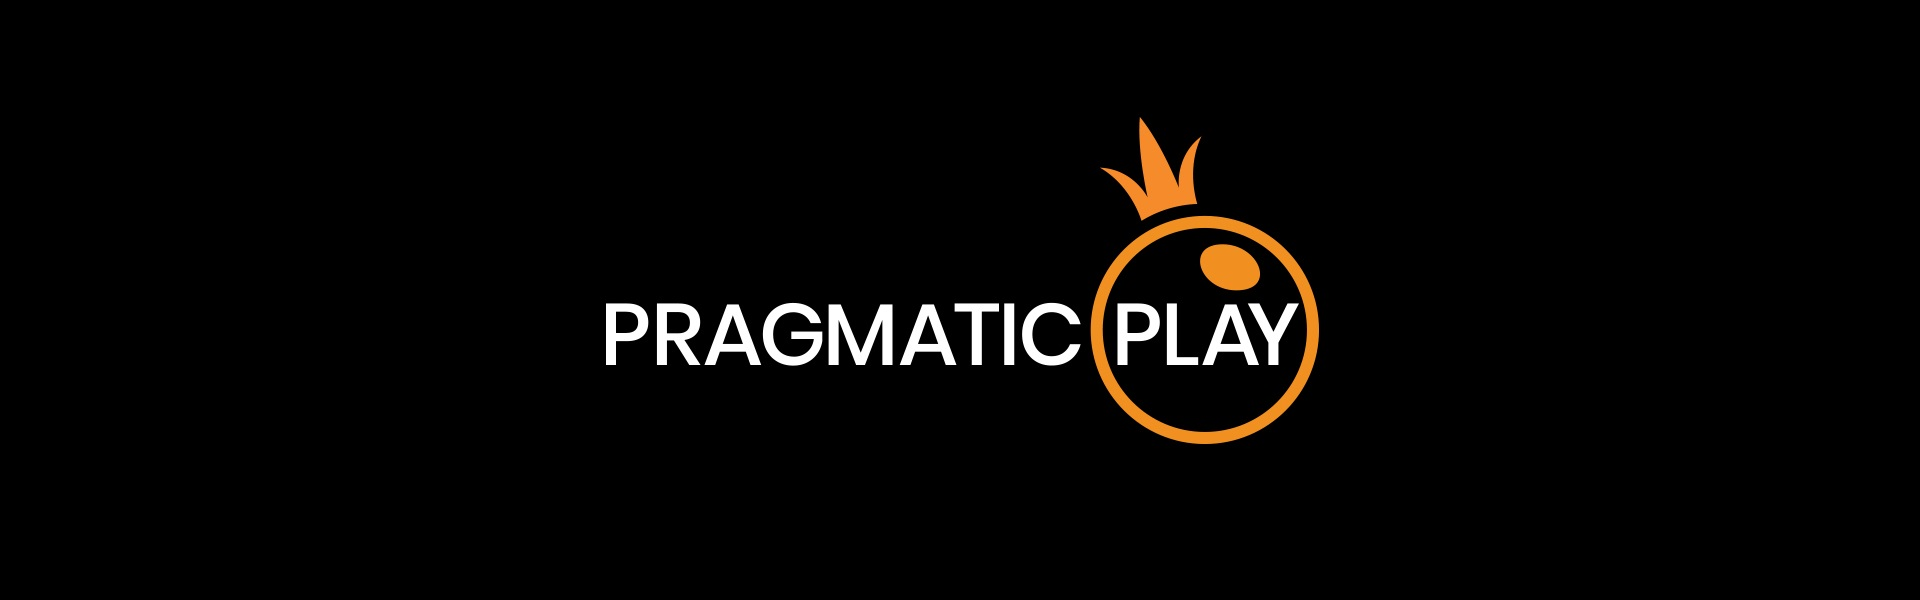 Pragmatic Play expands in Spain with Luckia deal